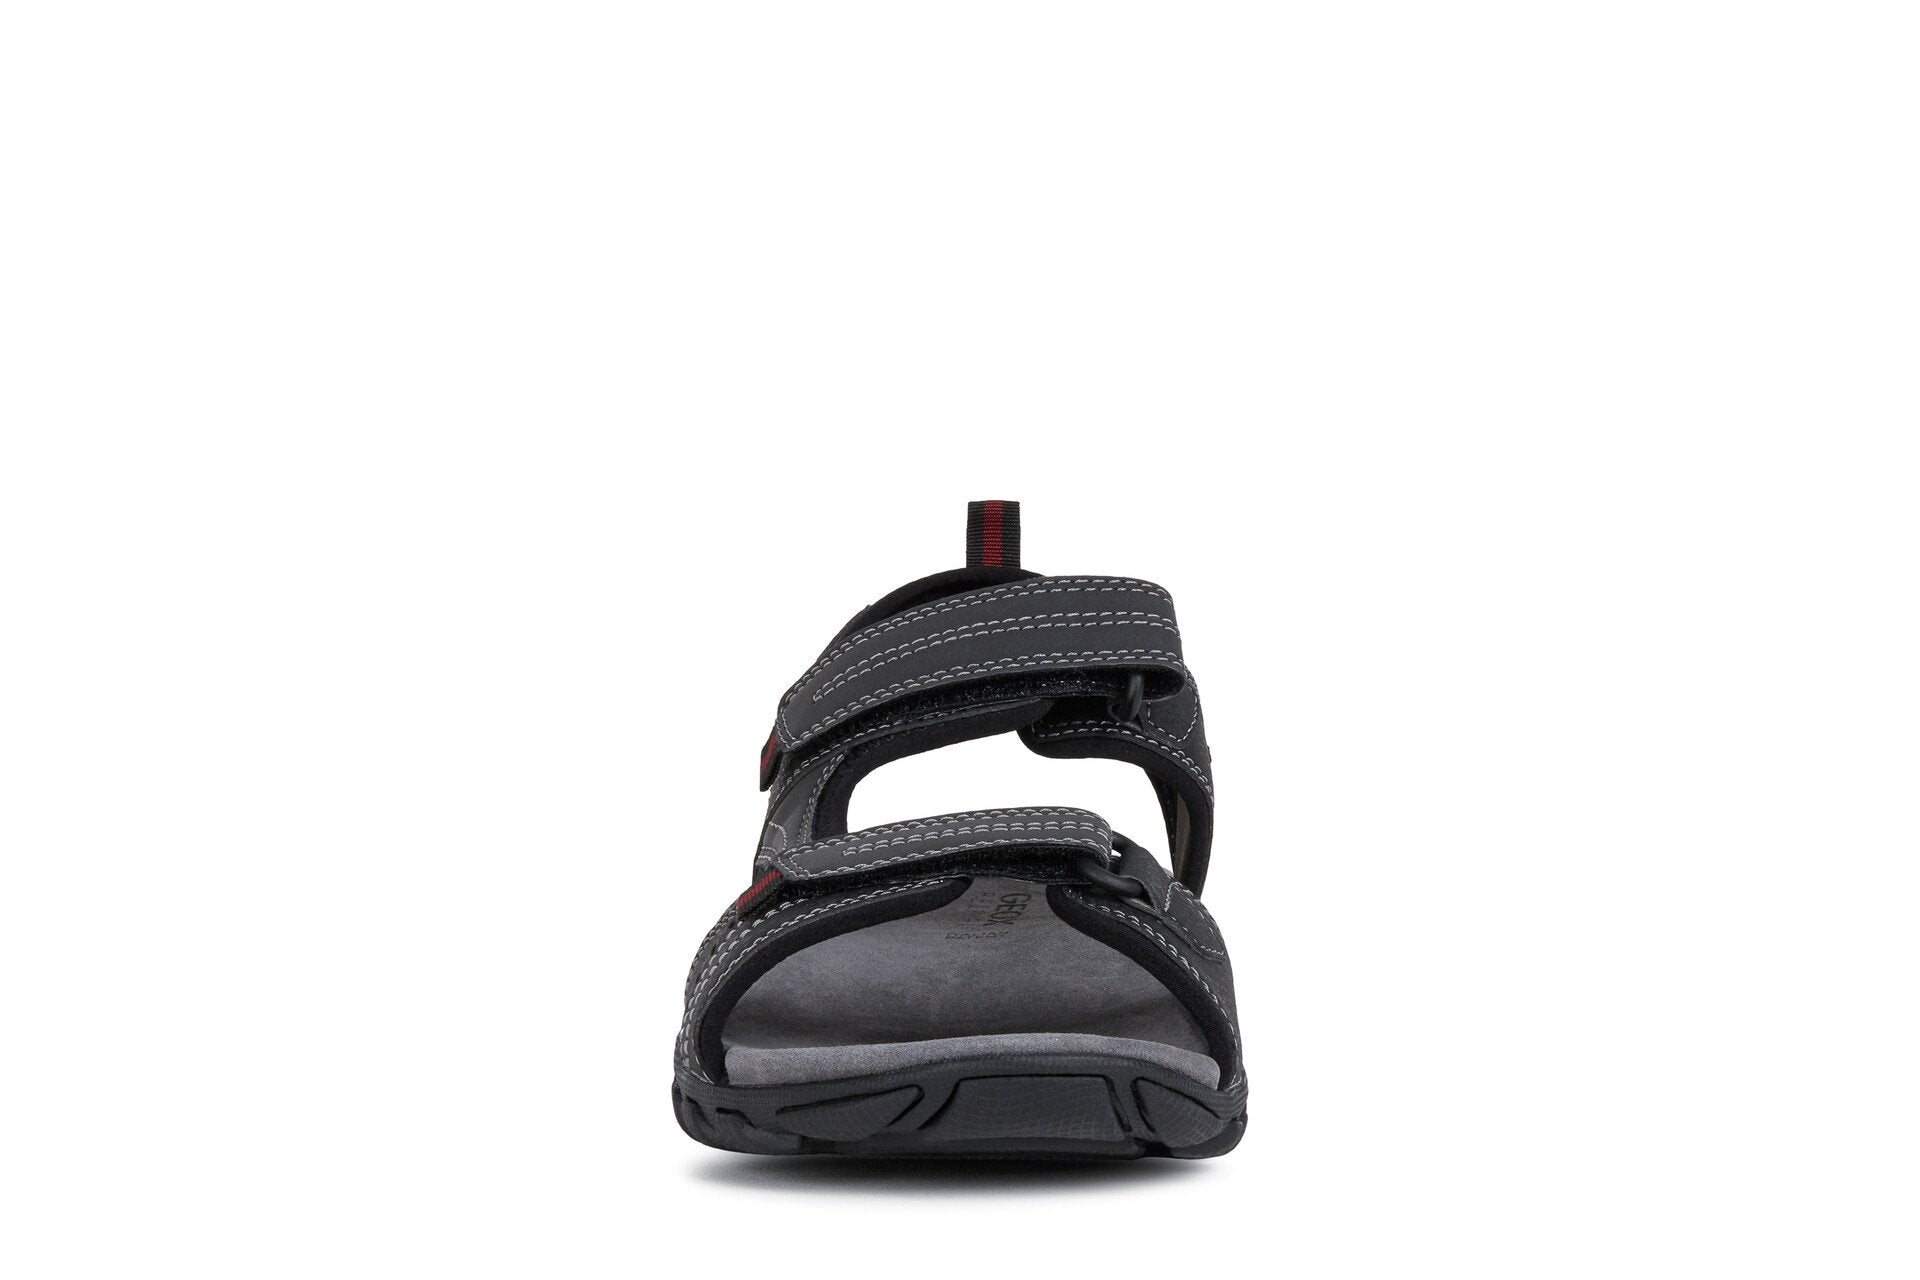 Geox Mens Black U Sand Mito Sandals U02Q2B0BC50C9999 | Vilbury London